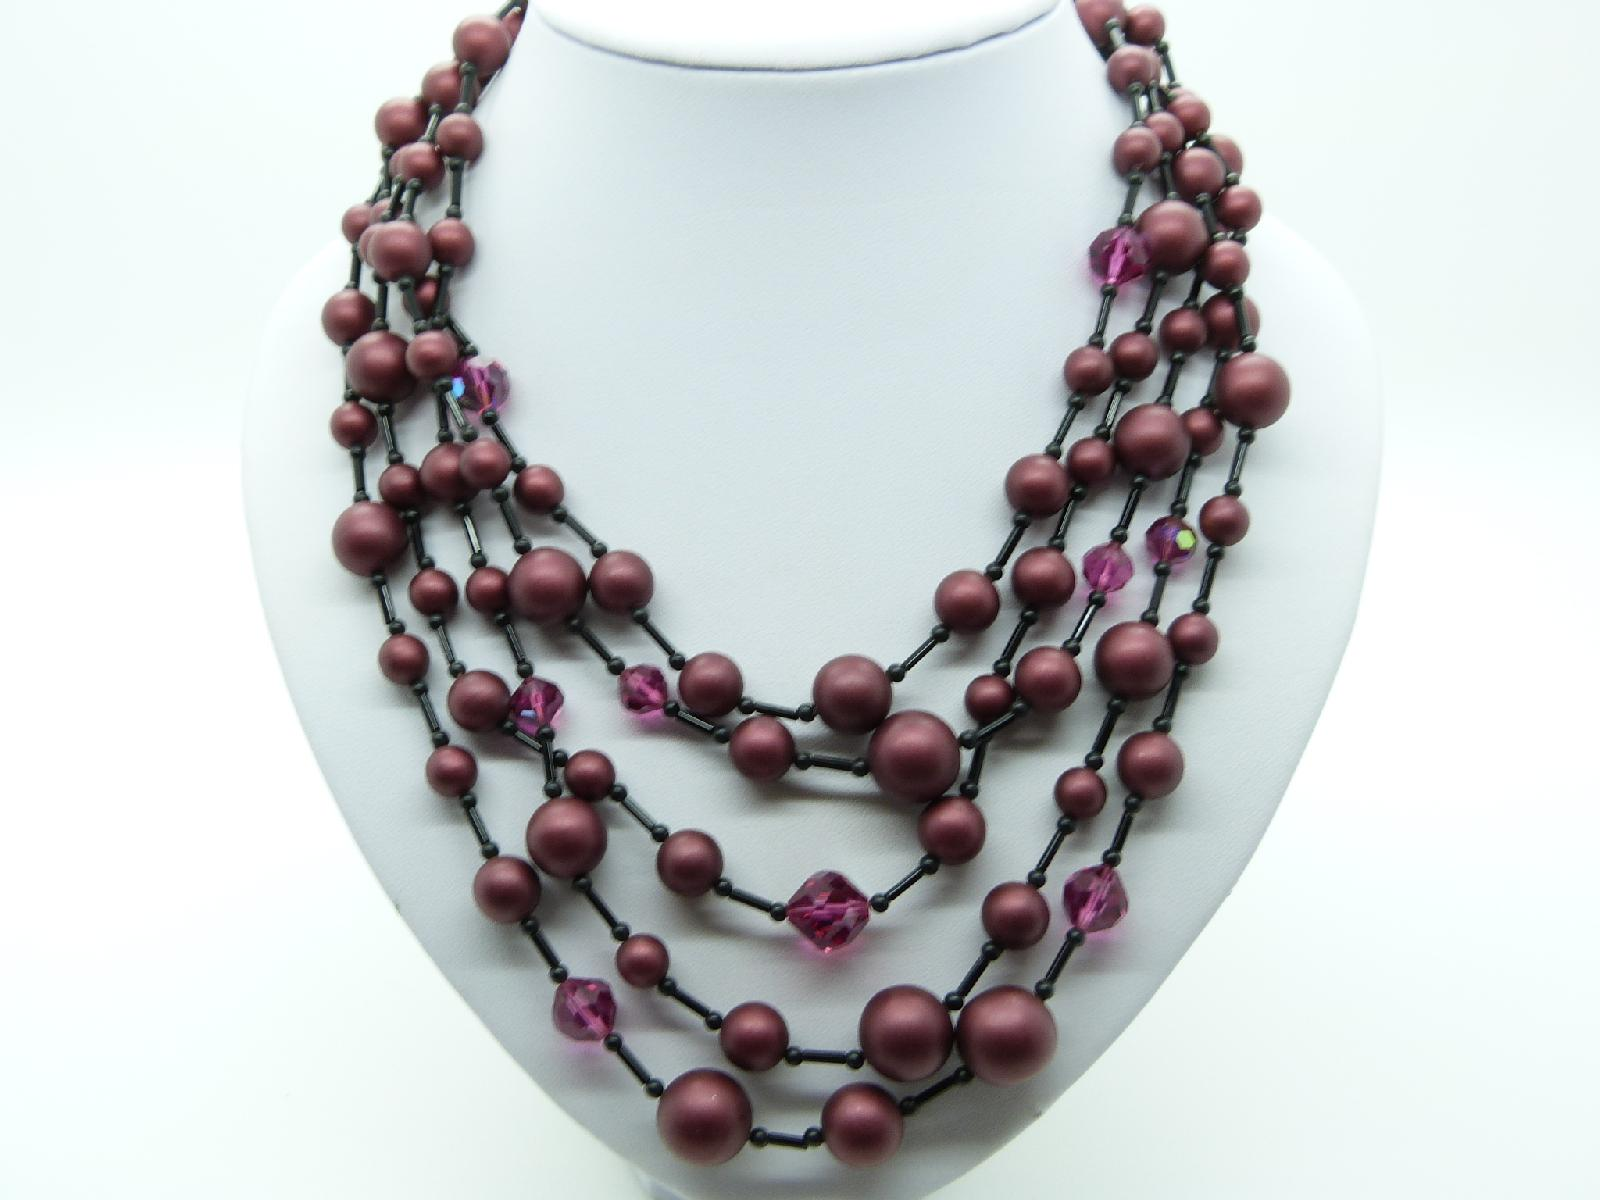 Vintage 50s Five Row Maroon Red Black and AB Pink Glass Bead Necklace